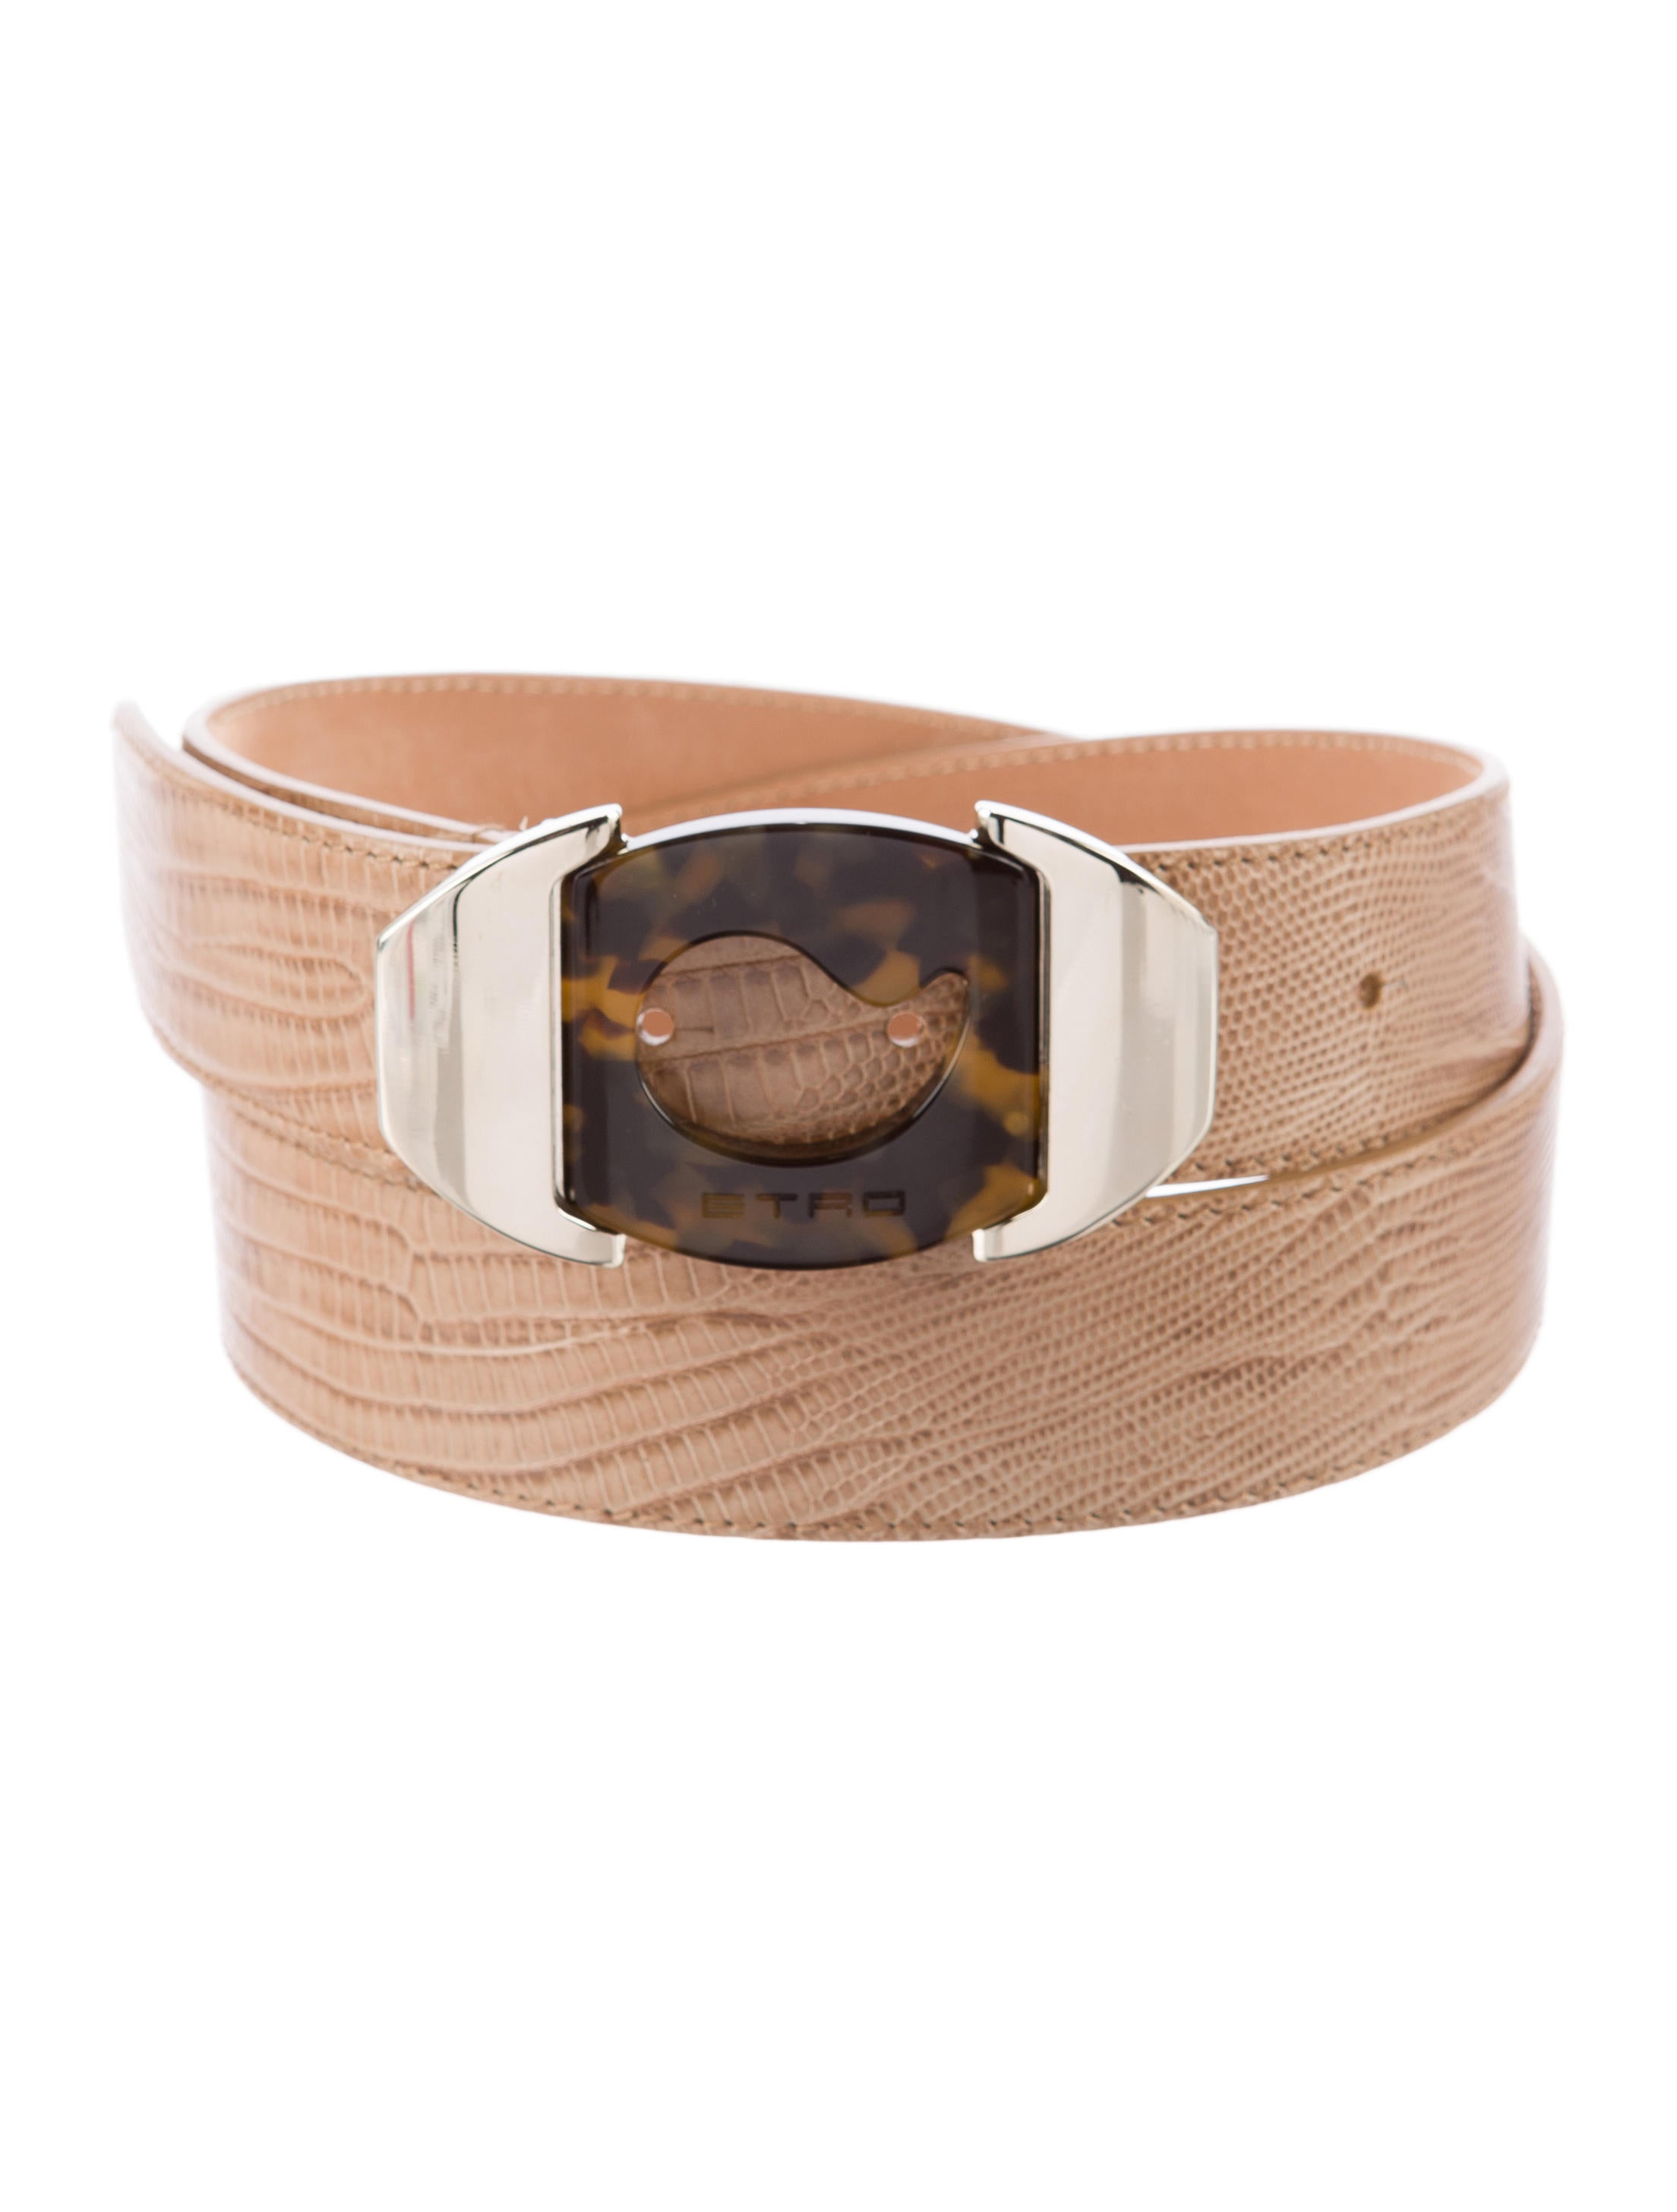 etro embossed leather belt accessories etr39077 the